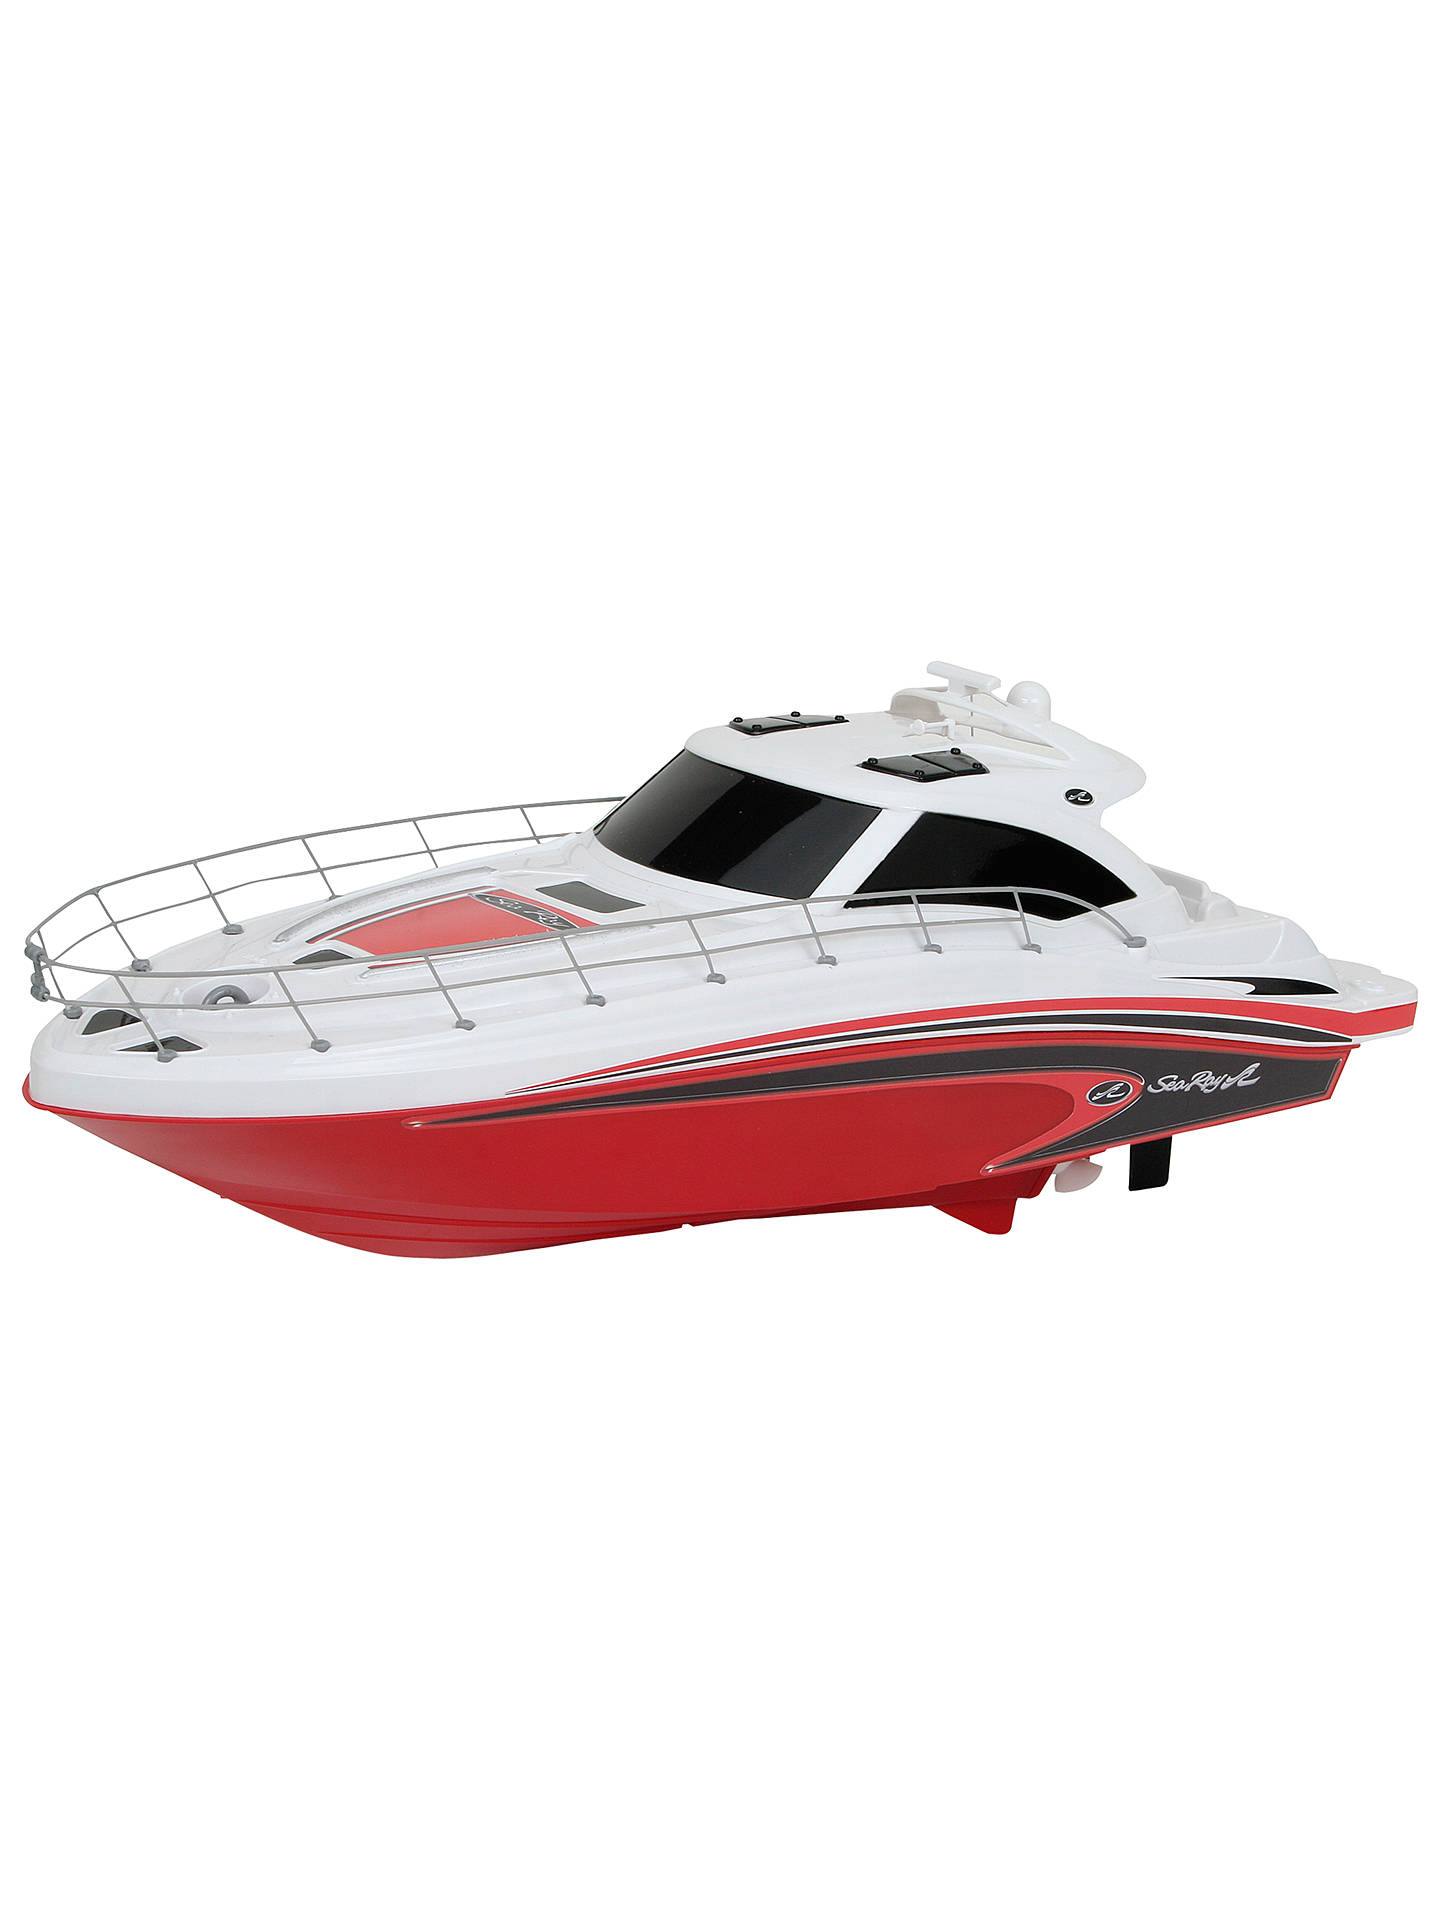 BuyNew Bright Radio Controlled Sea Ray Boat Online at johnlewis.com